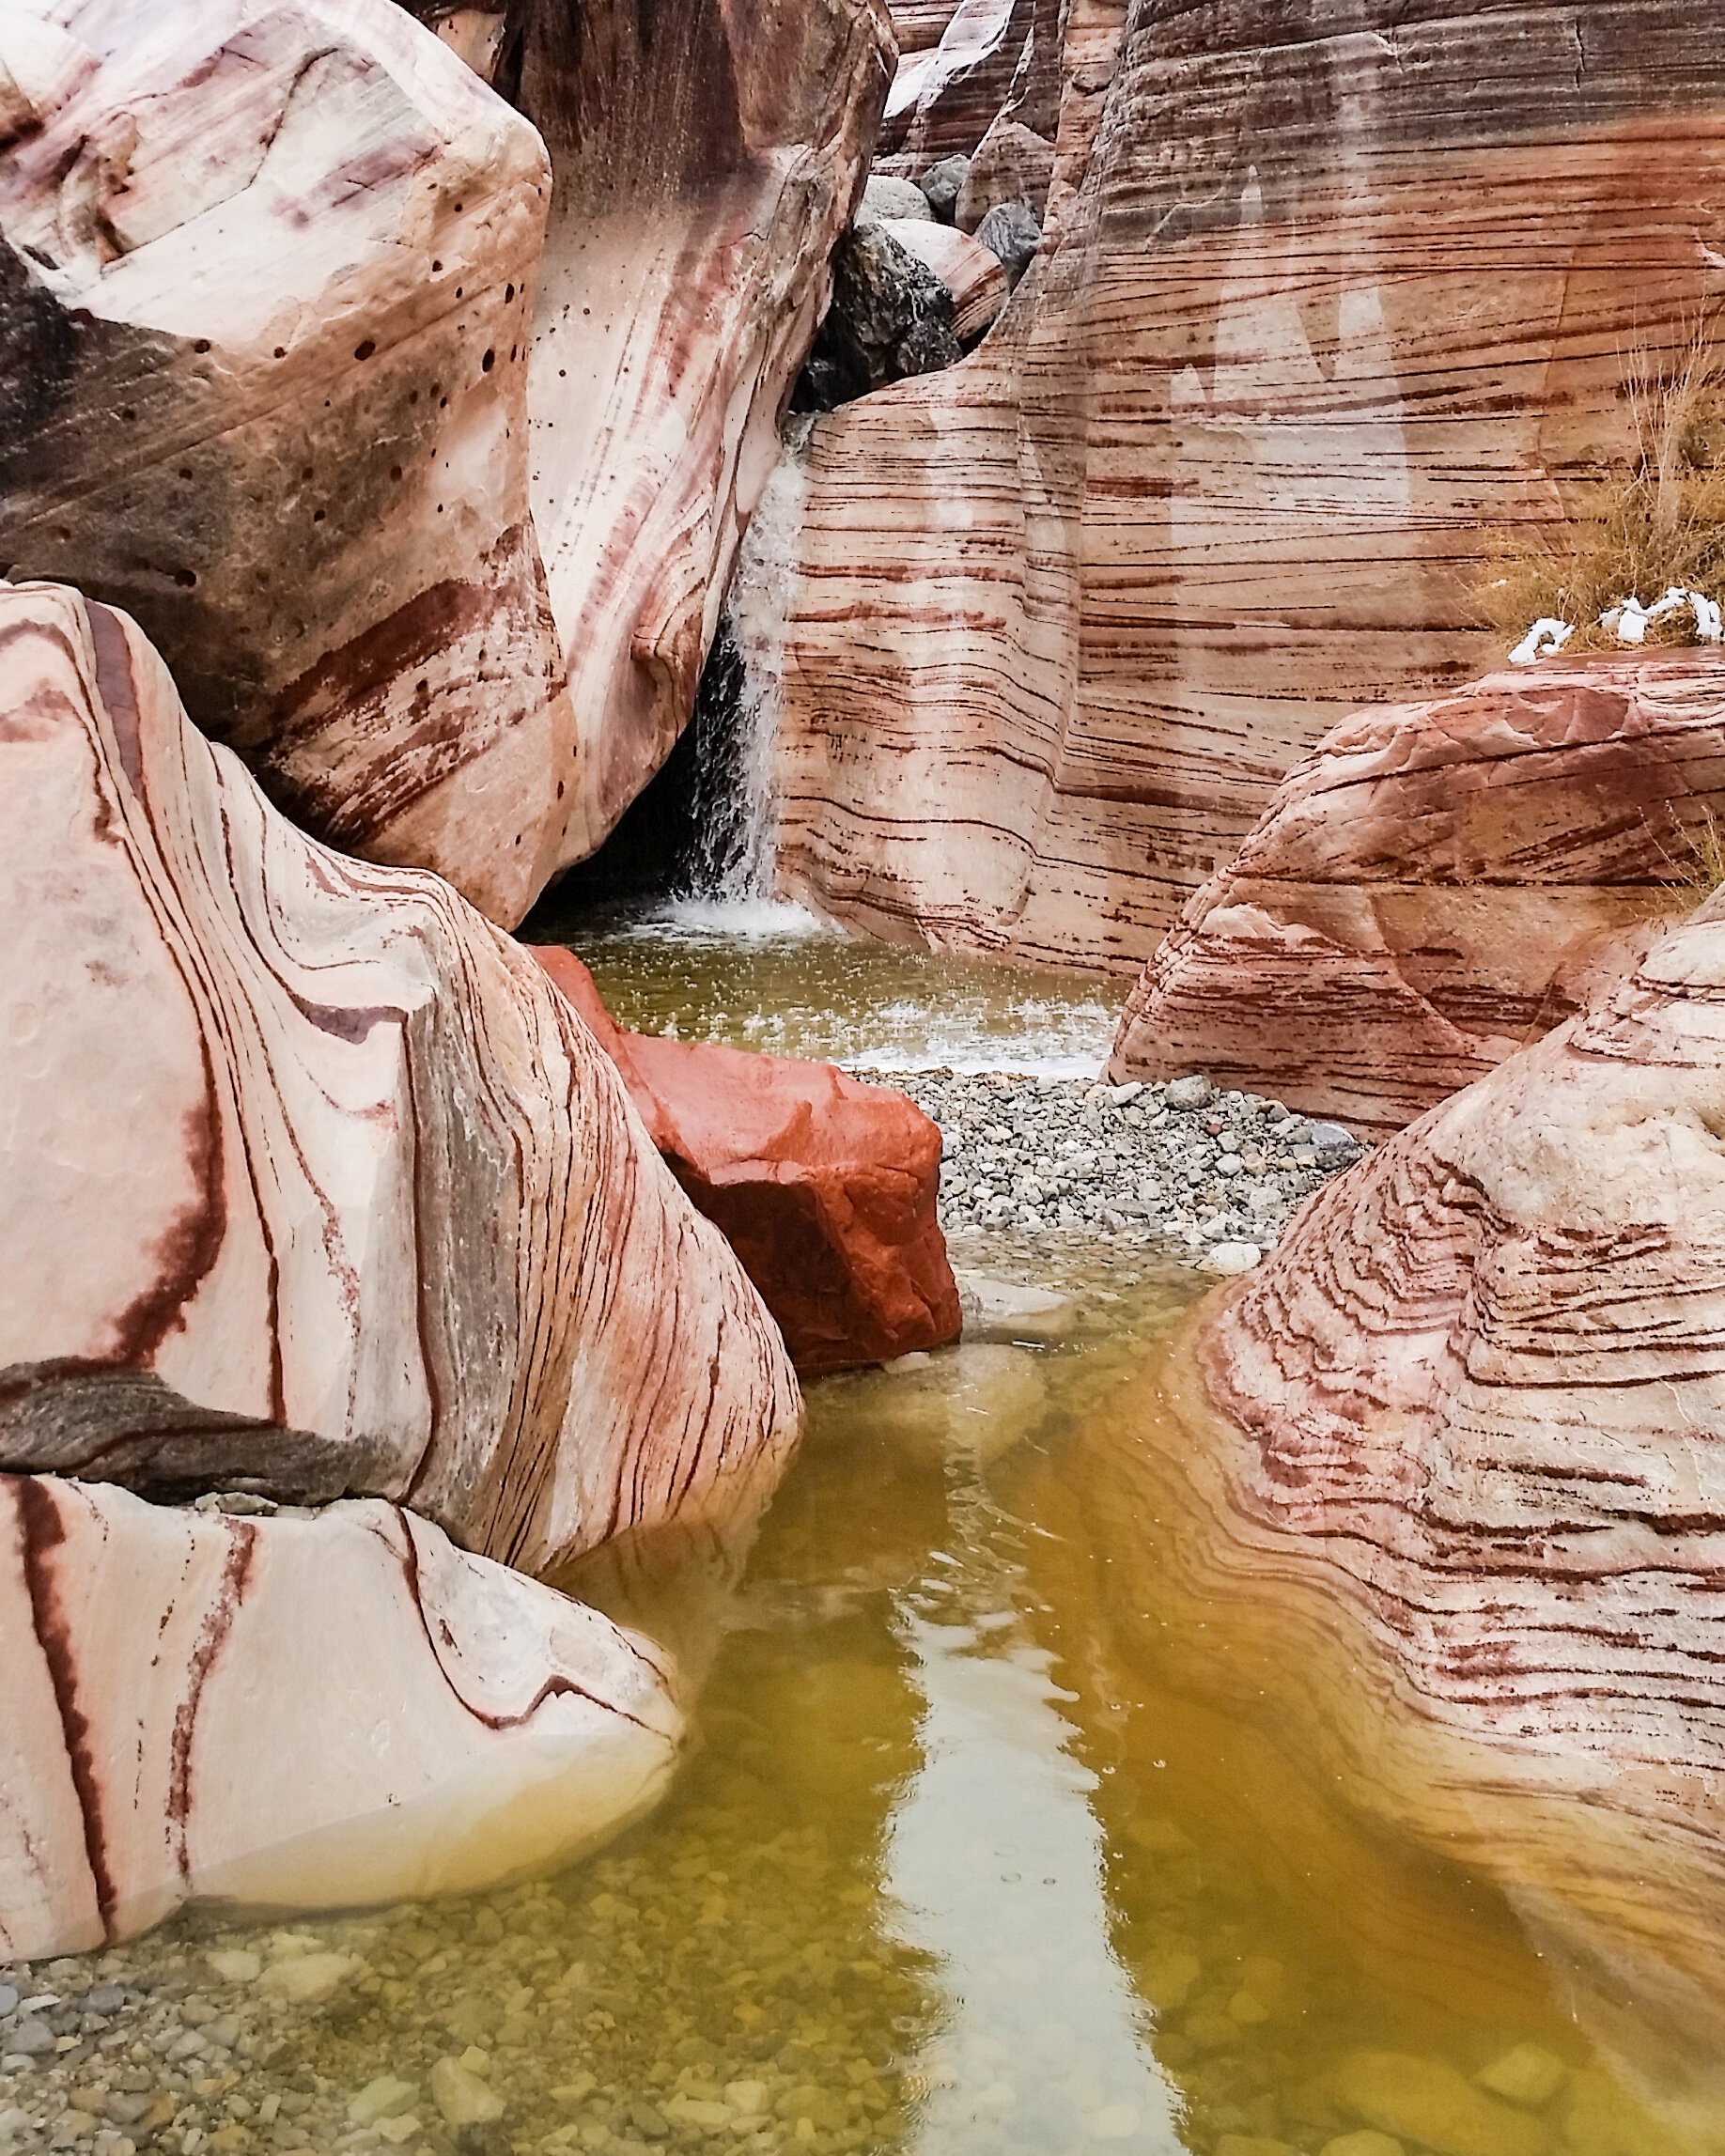 Wet sandstone should not be climbed on.Its challenging to know when it's dry as temperature, amount of rain, and amount of sun can all impact how the rock dries out.Sandstone is like a dry sponge, absorbing moisture, drying on the outside but still retaining water inside.As it absorbs the water it dissolves the cementing agents keeping it together and can lose up to 75% of it strength when dry. -